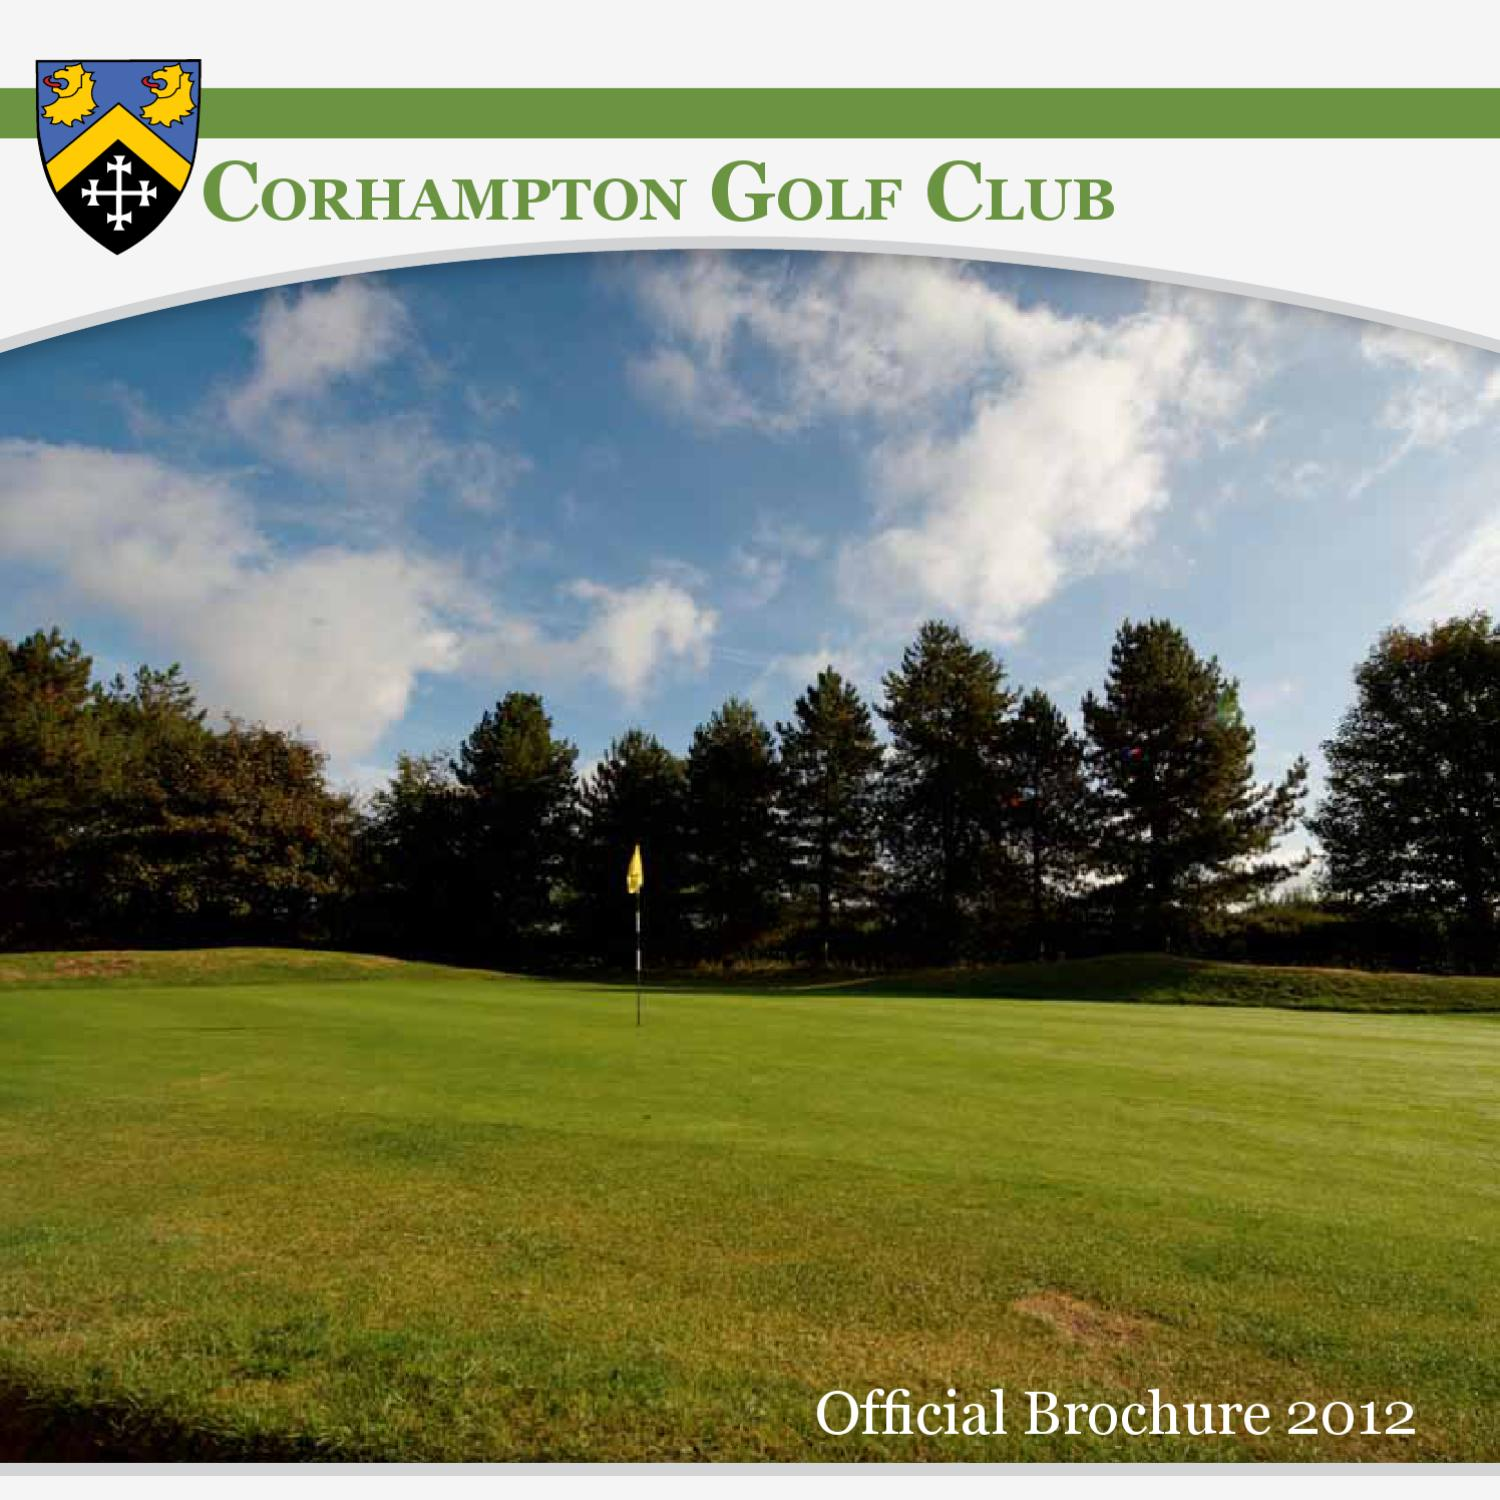 Corhampton Golf Club ficial Brochure 2011 12 by Global Sports